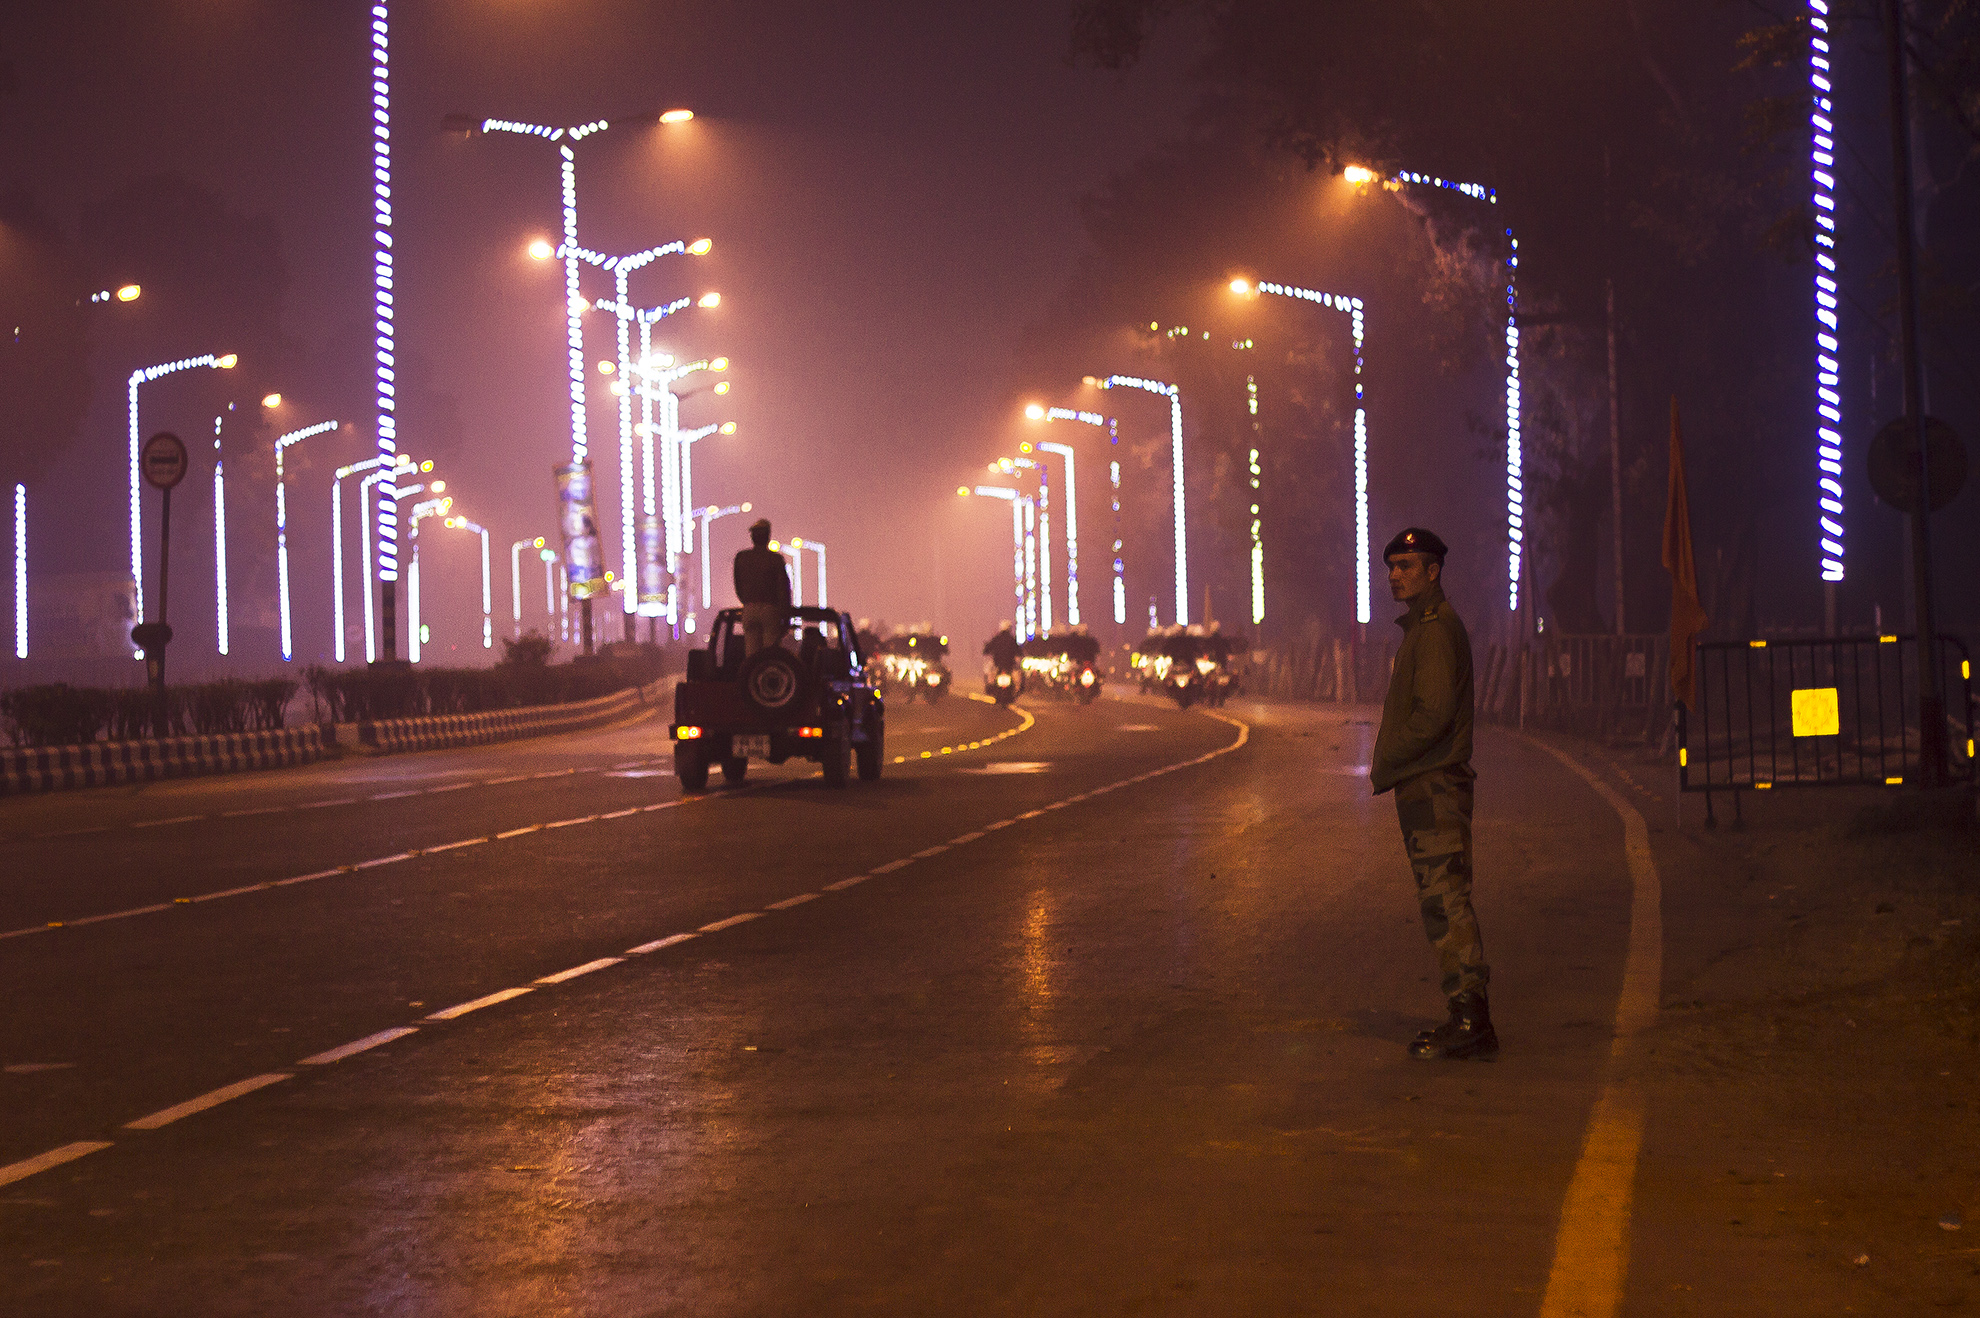 a military man standing beside the road and assure safety during the practice of republic day parade practice